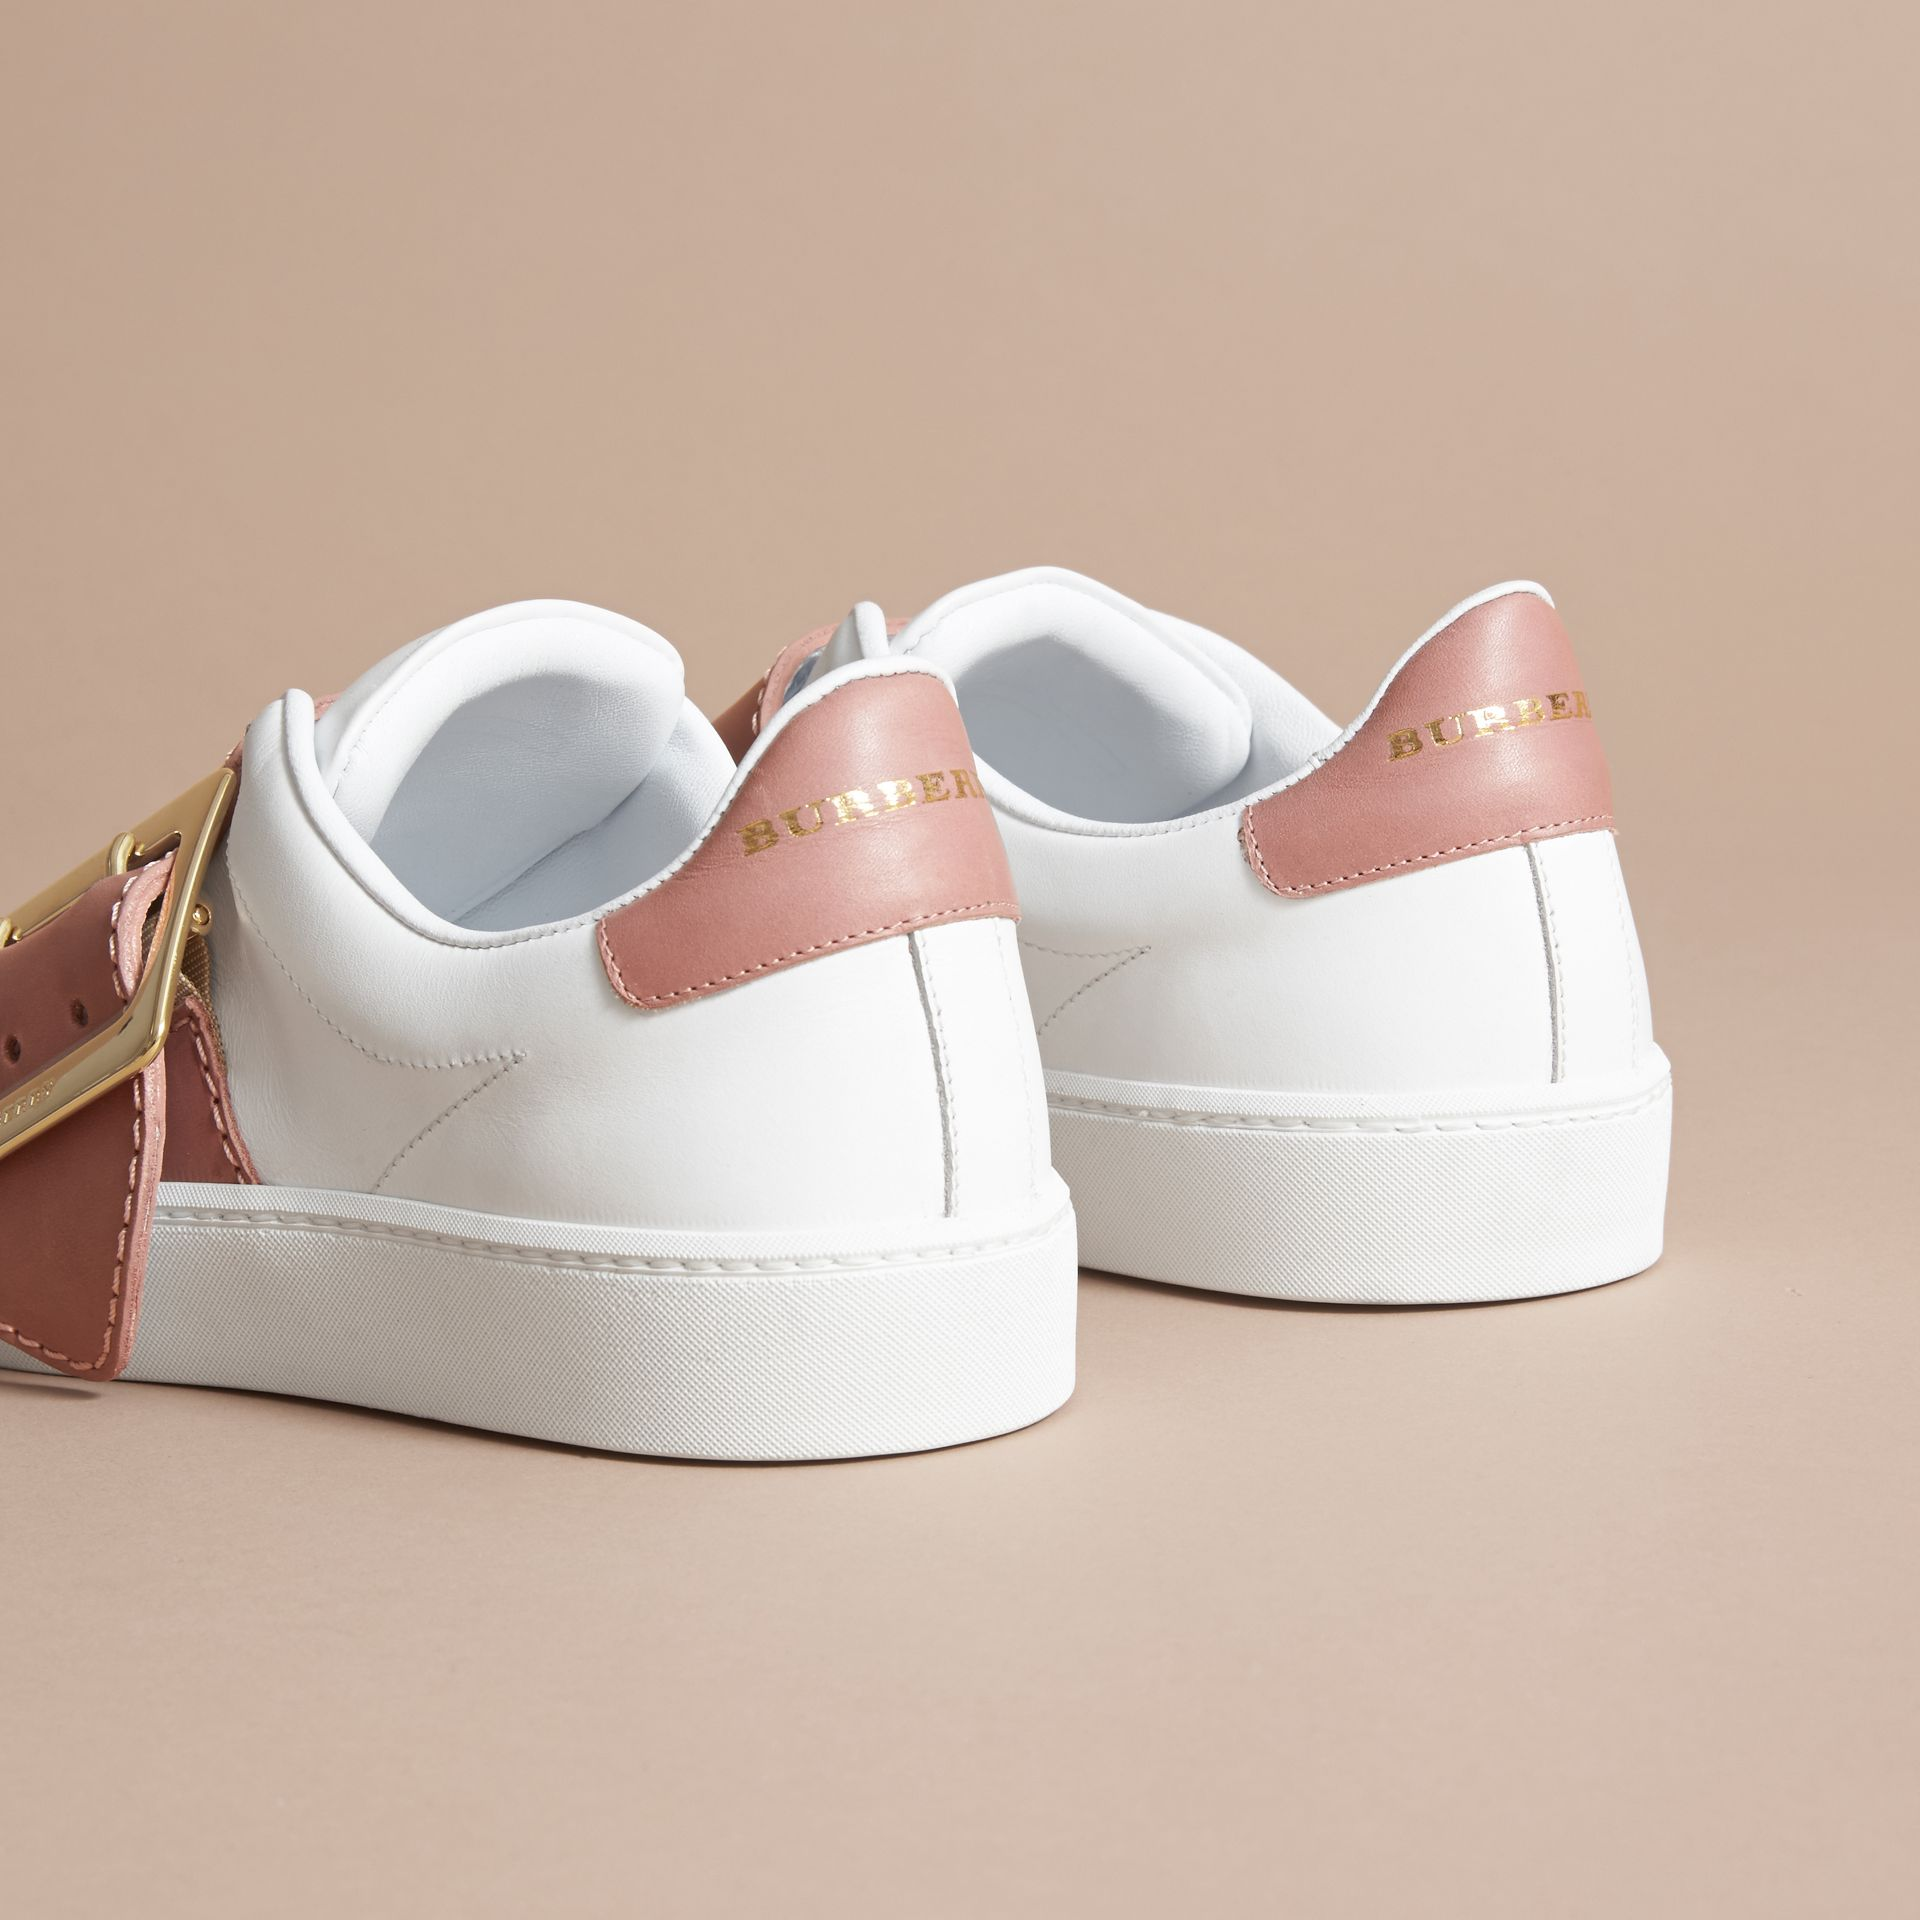 Buckle Detail Leather Trainers in Pink Apricot - Women | Burberry Canada - gallery image 4